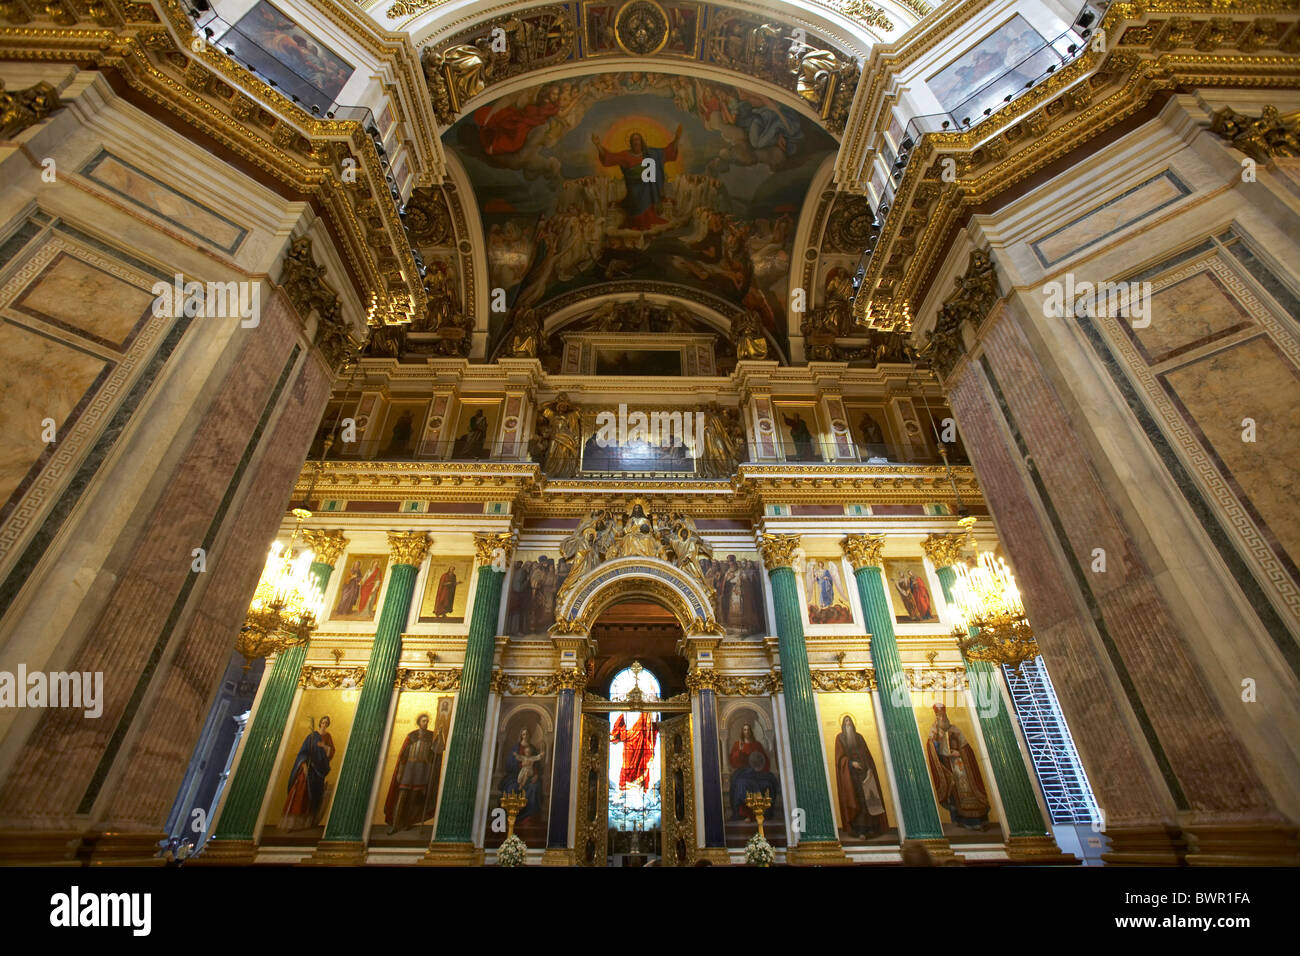 Russia Saint Petersburg Isaac cathedral inside indoors architecture religious religion detail Russian orthodo - Stock Image